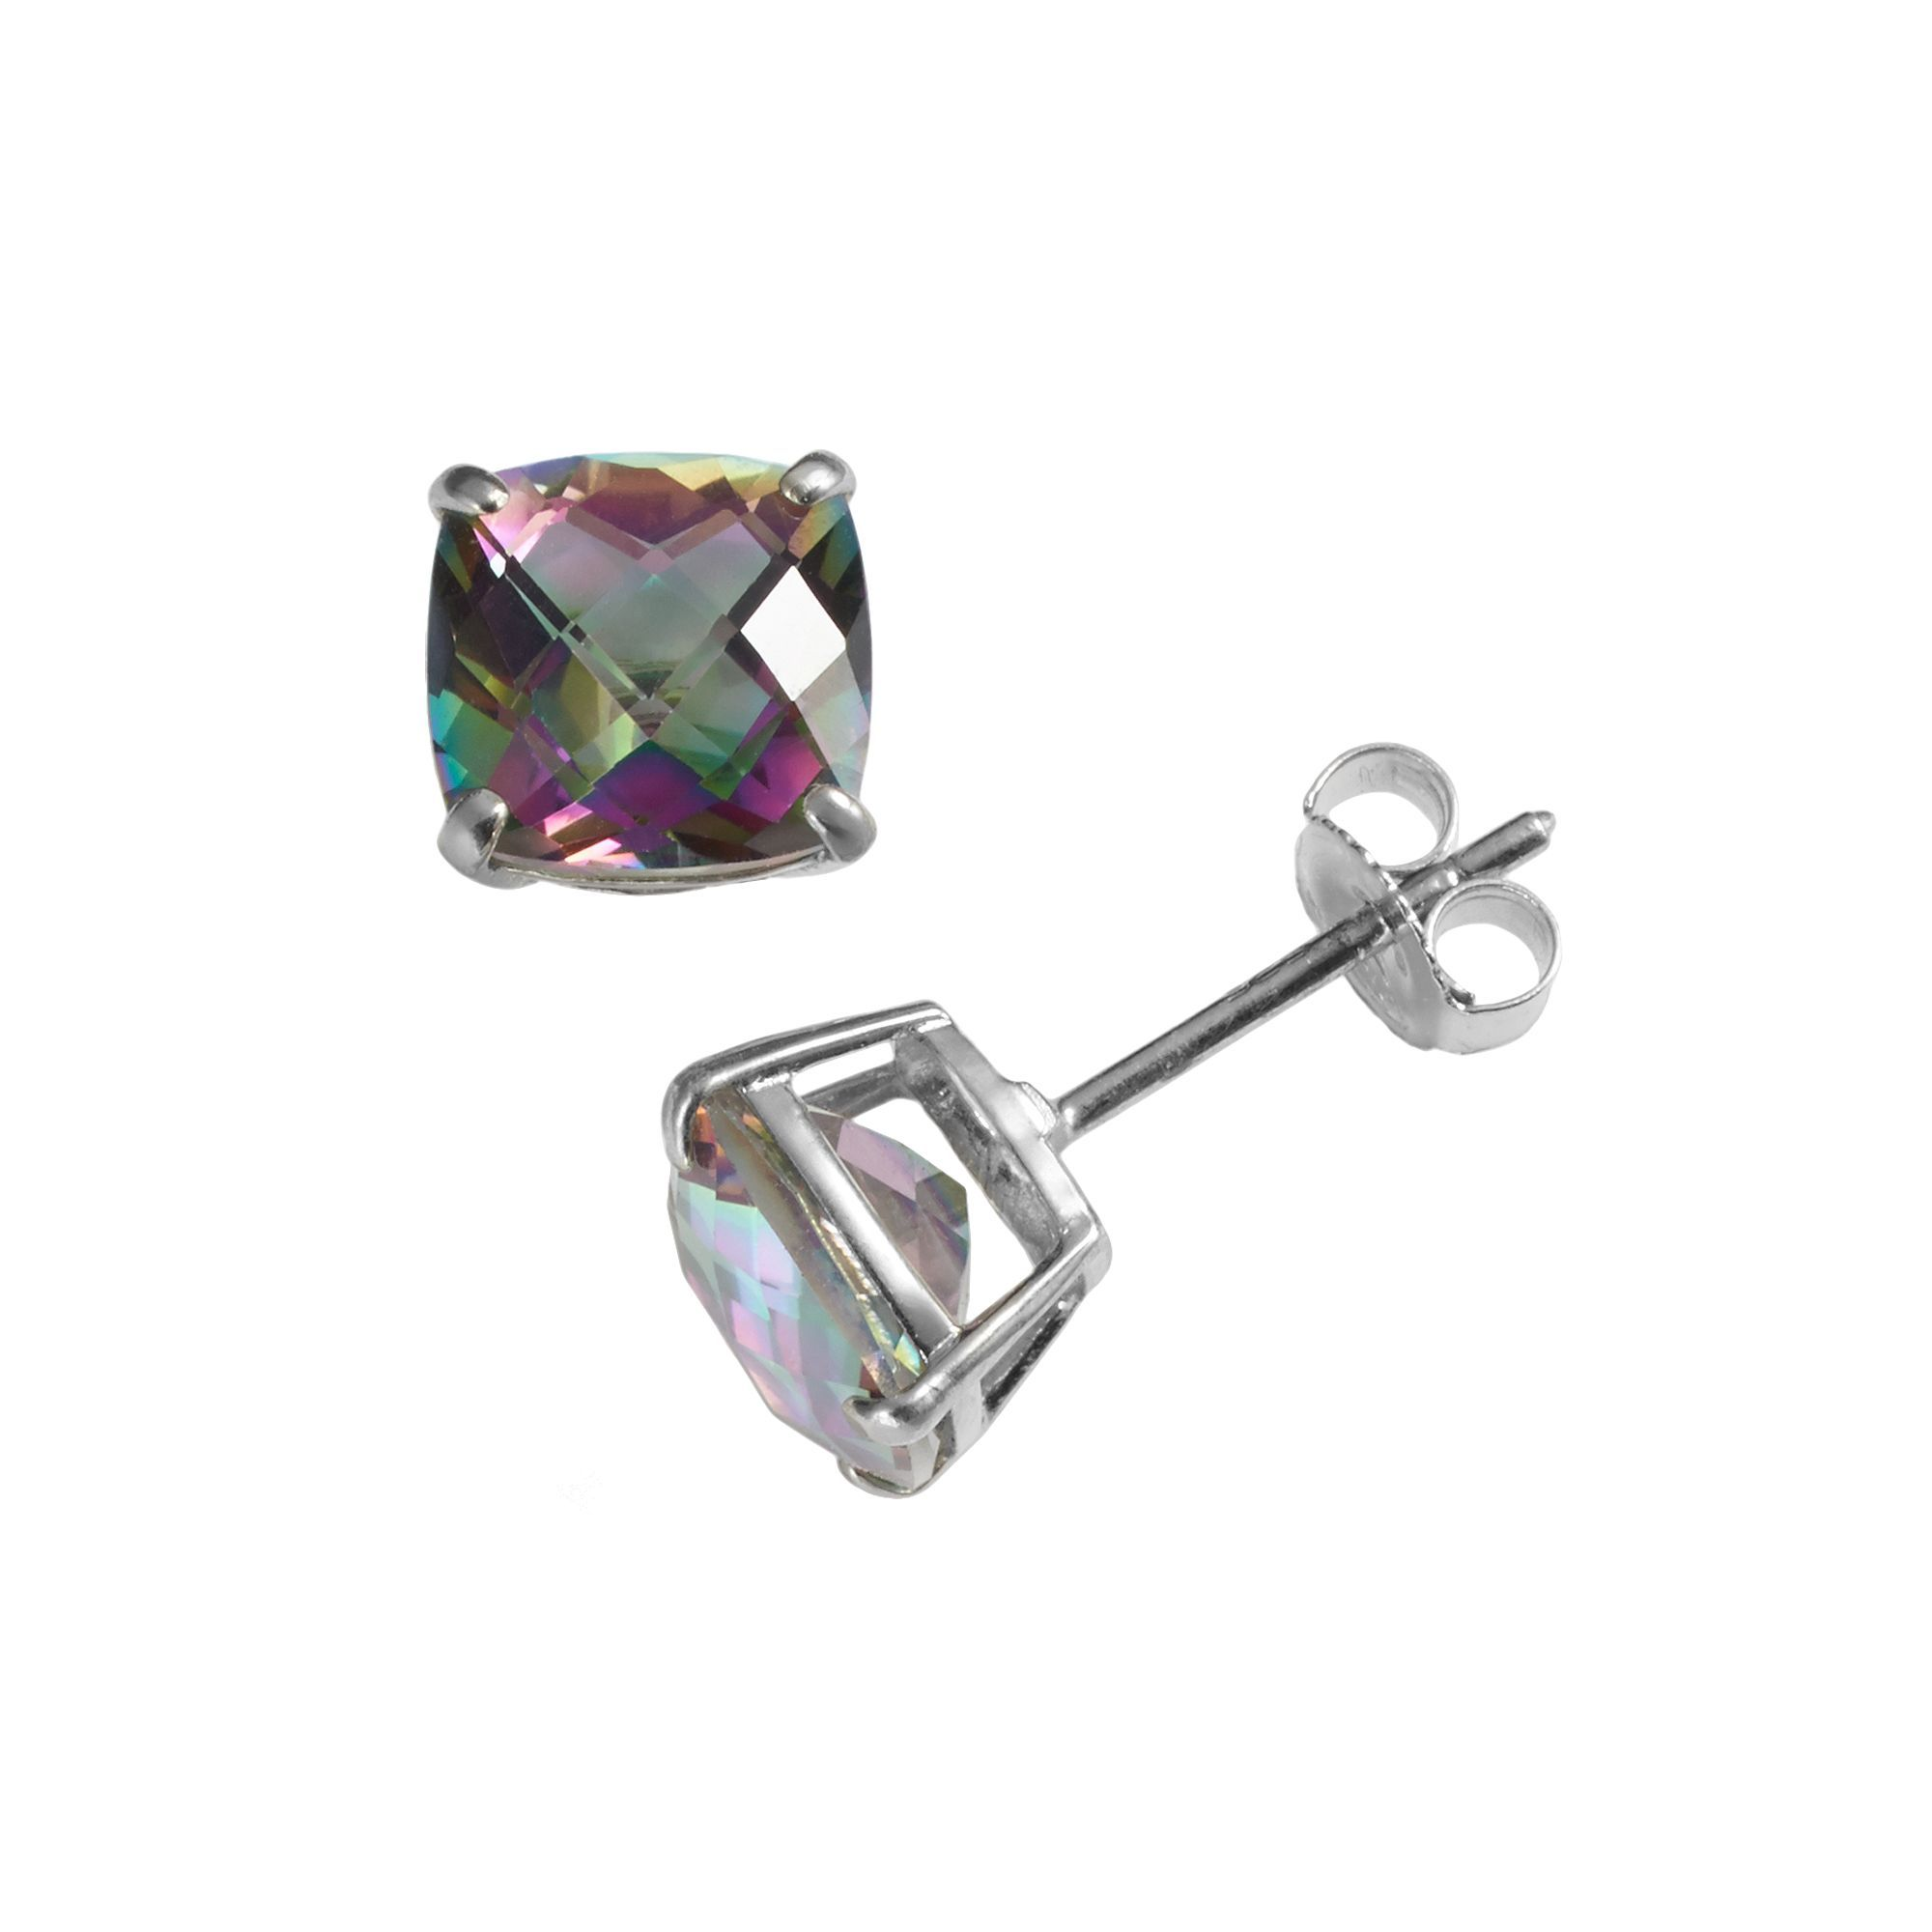 gemstone sterling matthew multicolor multicolored lyst sapphire earrings button gallery jewelry by m campbell normal c l mcl silver multi laurenza product